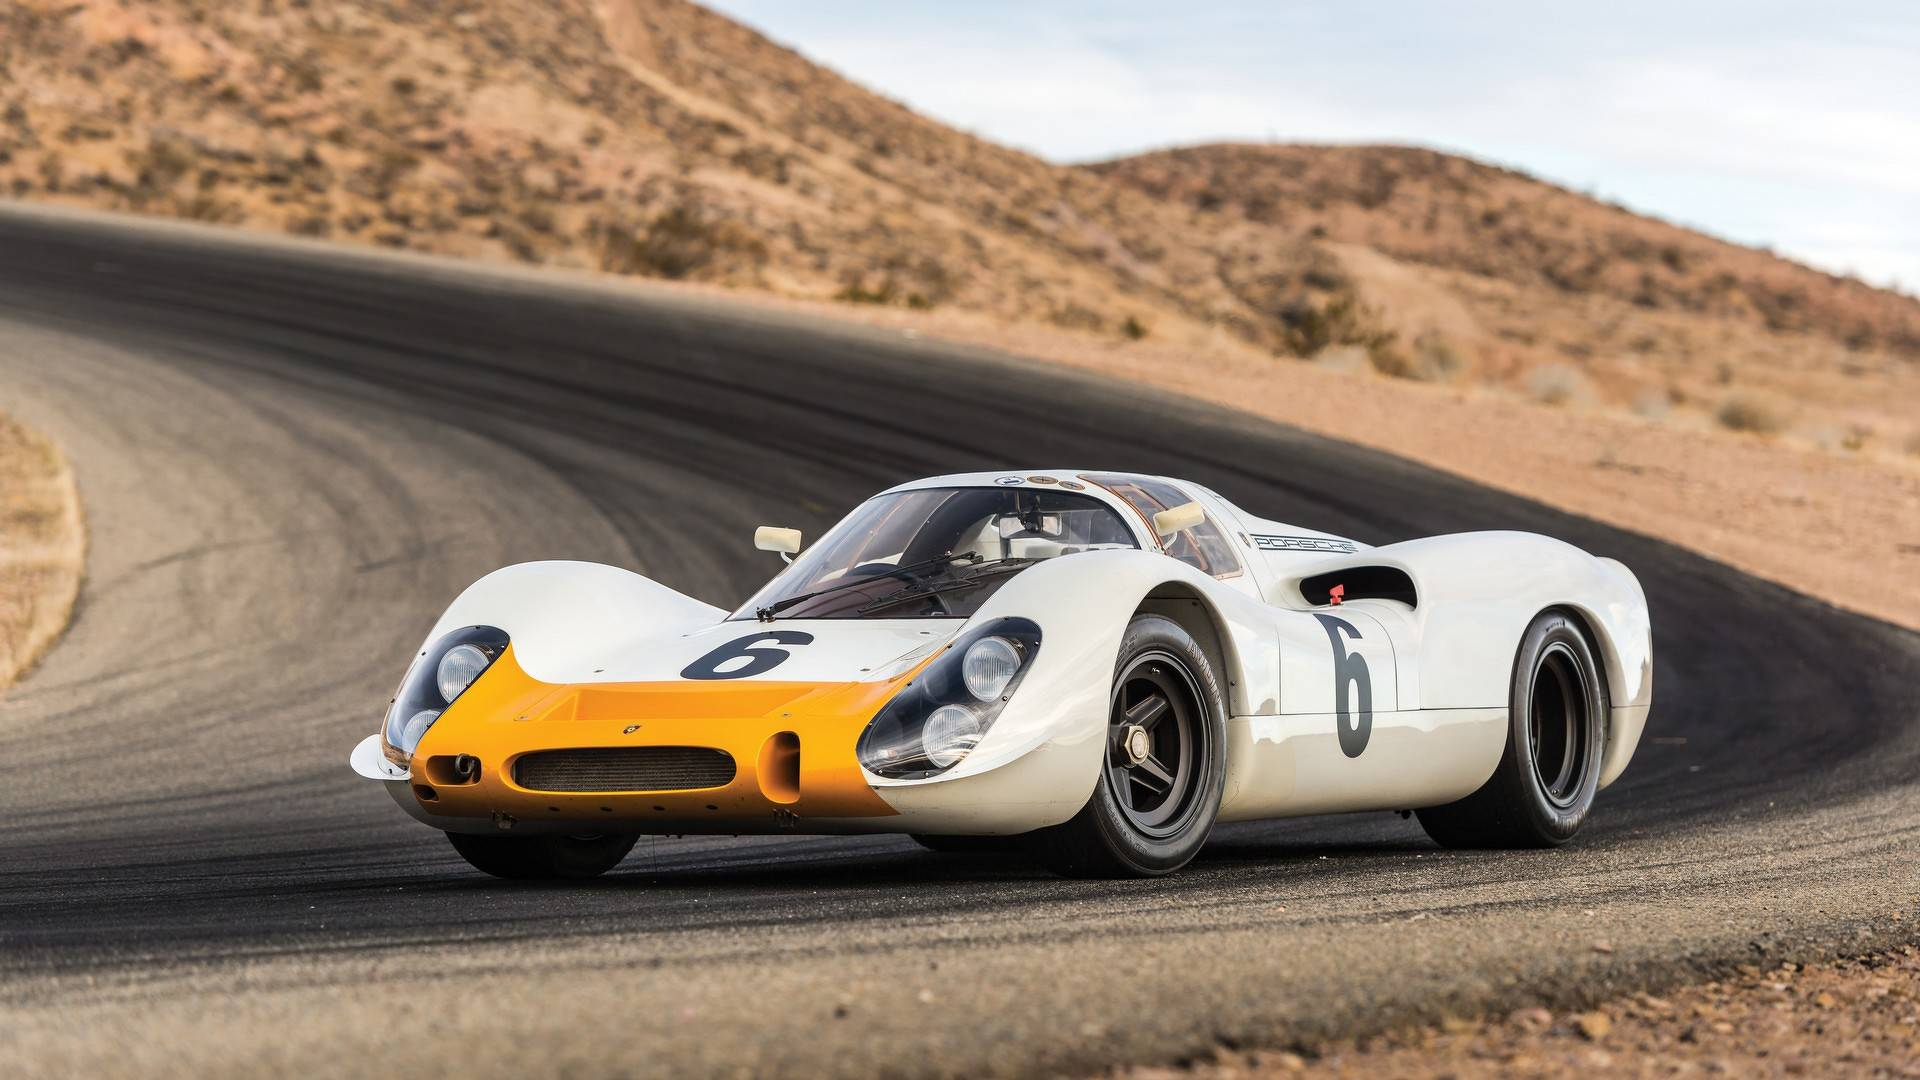 Auction-Bound Porsche 908 Short-Tail Is Vintage Race Car Perfection